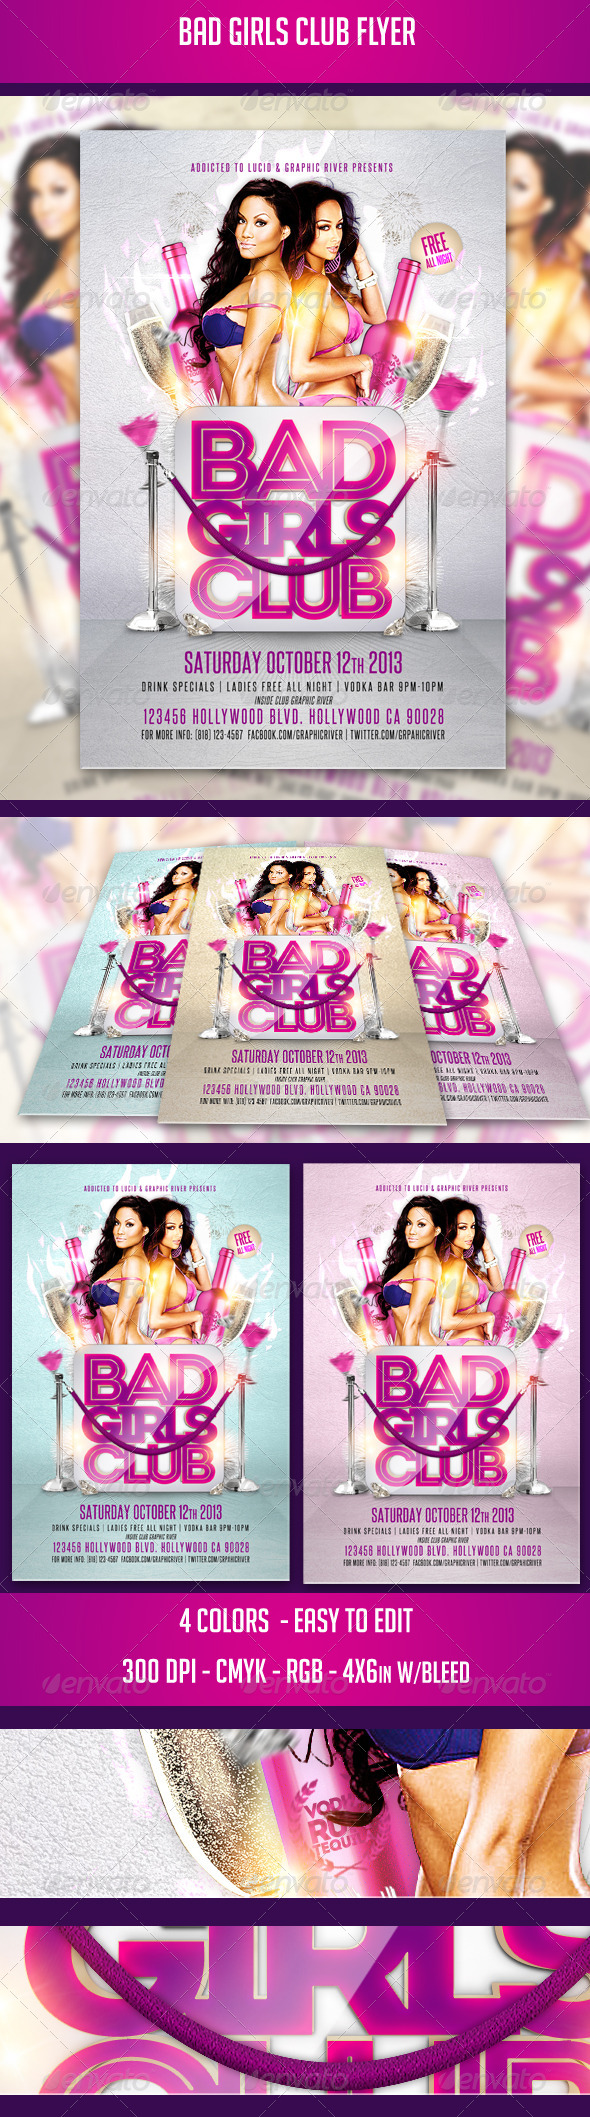 GraphicRiver Bad Girls Club Flyer 5648825